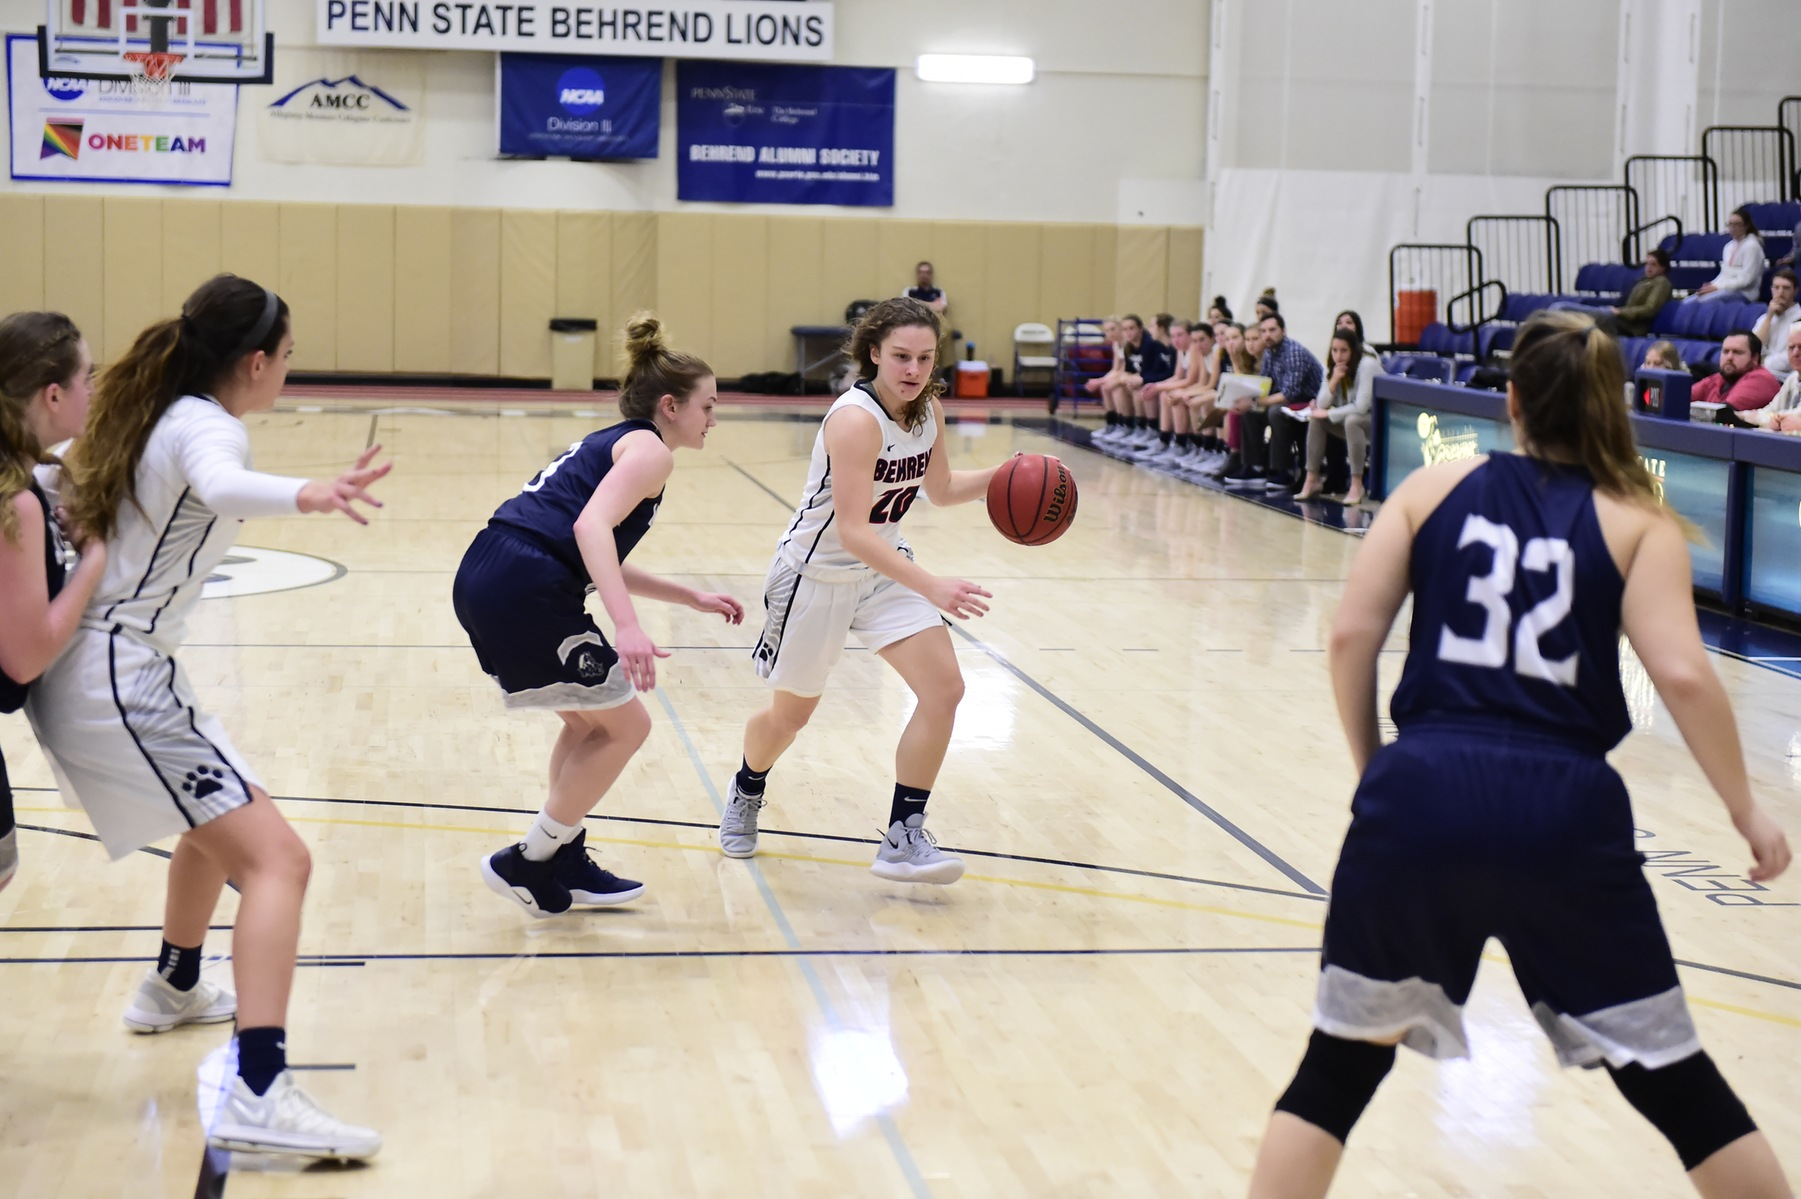 Pitt-Greensburg Survives Lions Late Comeback